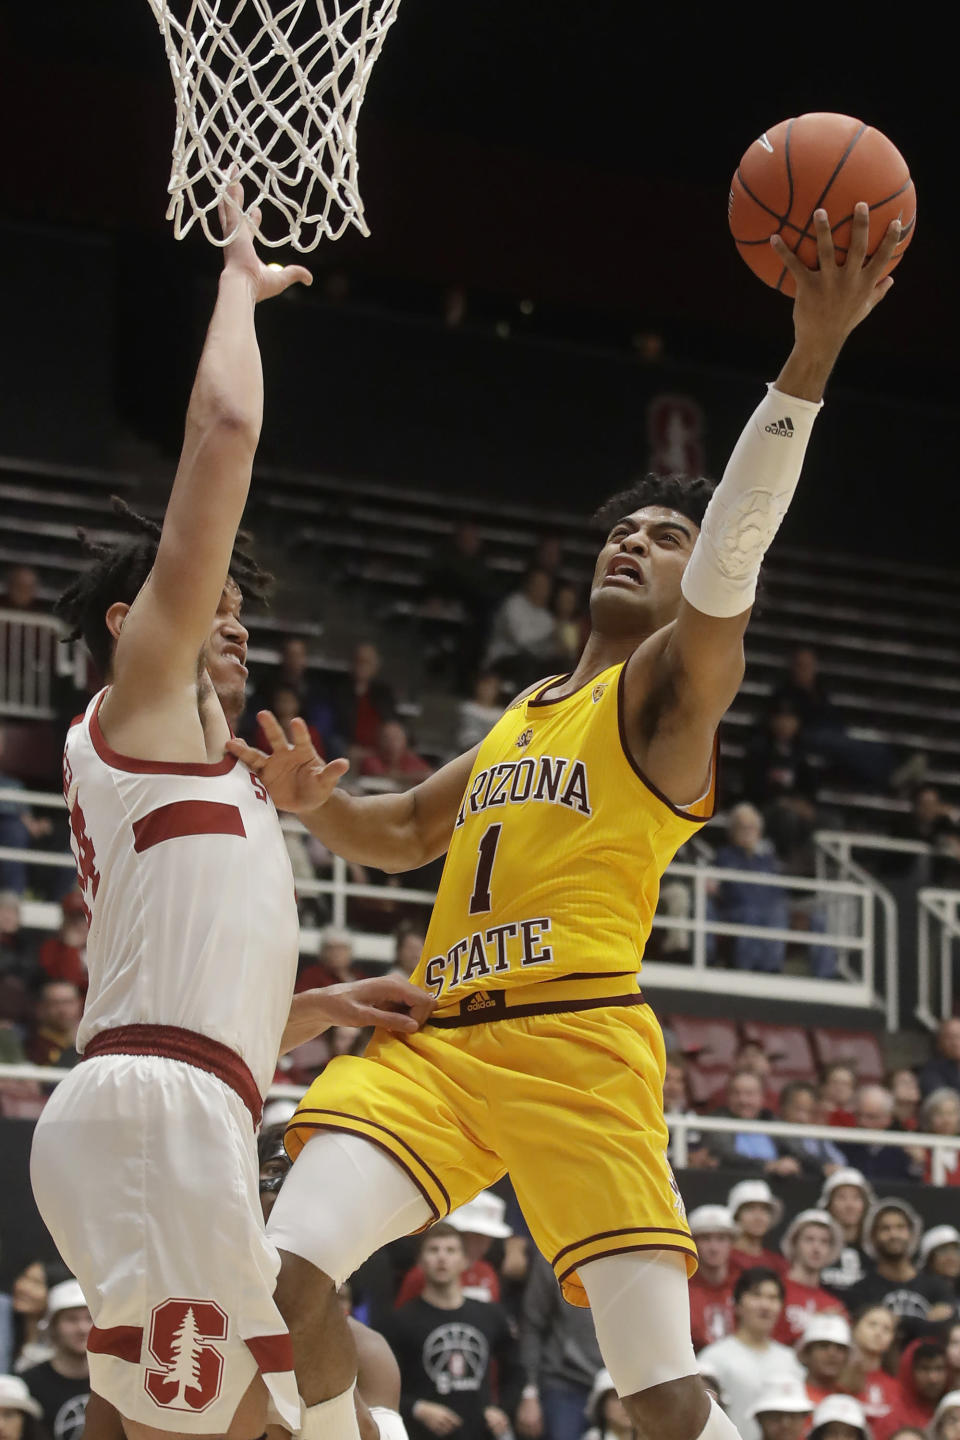 Arizona State guard Remy Martin (1) shoots against Stanford forward Spencer Jones during the first half of an NCAA college basketball game in Stanford, Calif., Thursday, Feb. 13, 2020. (AP Photo/Jeff Chiu)